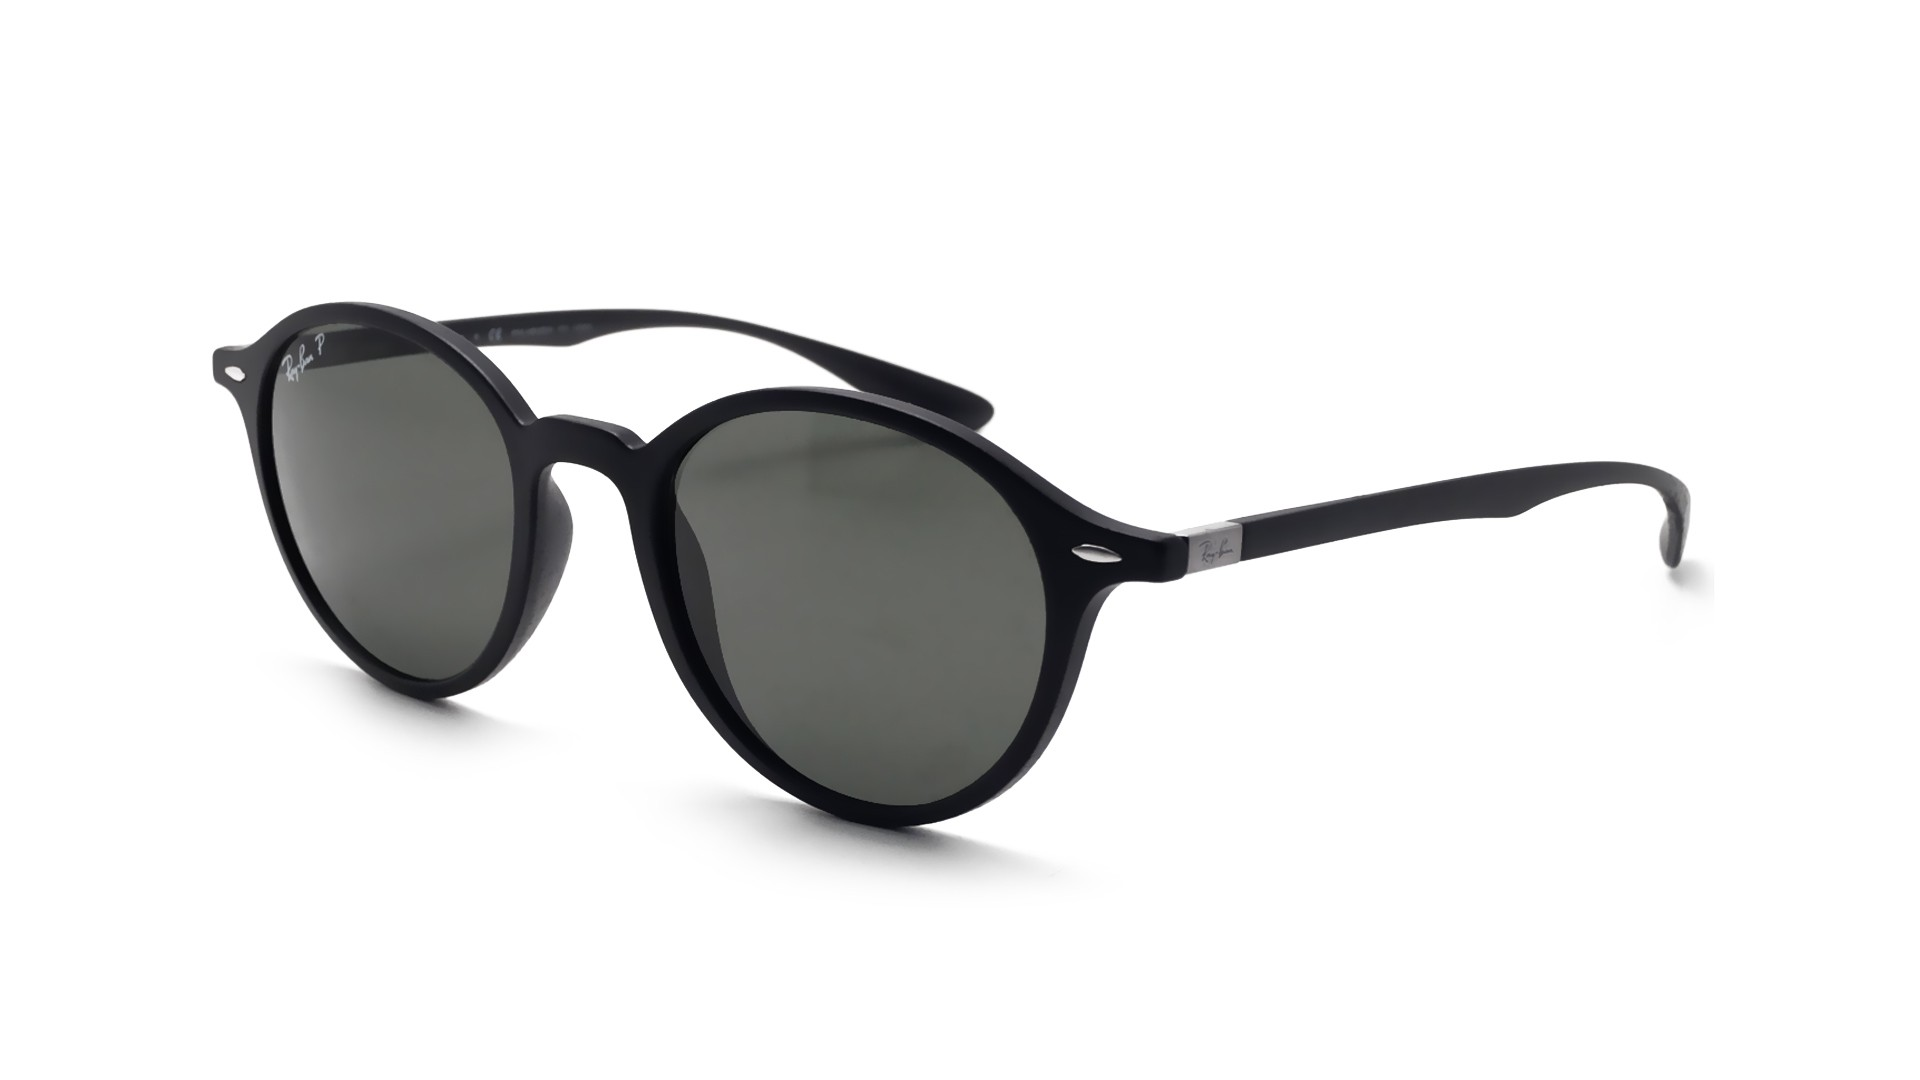 a89af04cafecea ... clearance sunglasses ray ban tech black matte rb4237 601s58 50 21  medium polarized 6f460 a53be